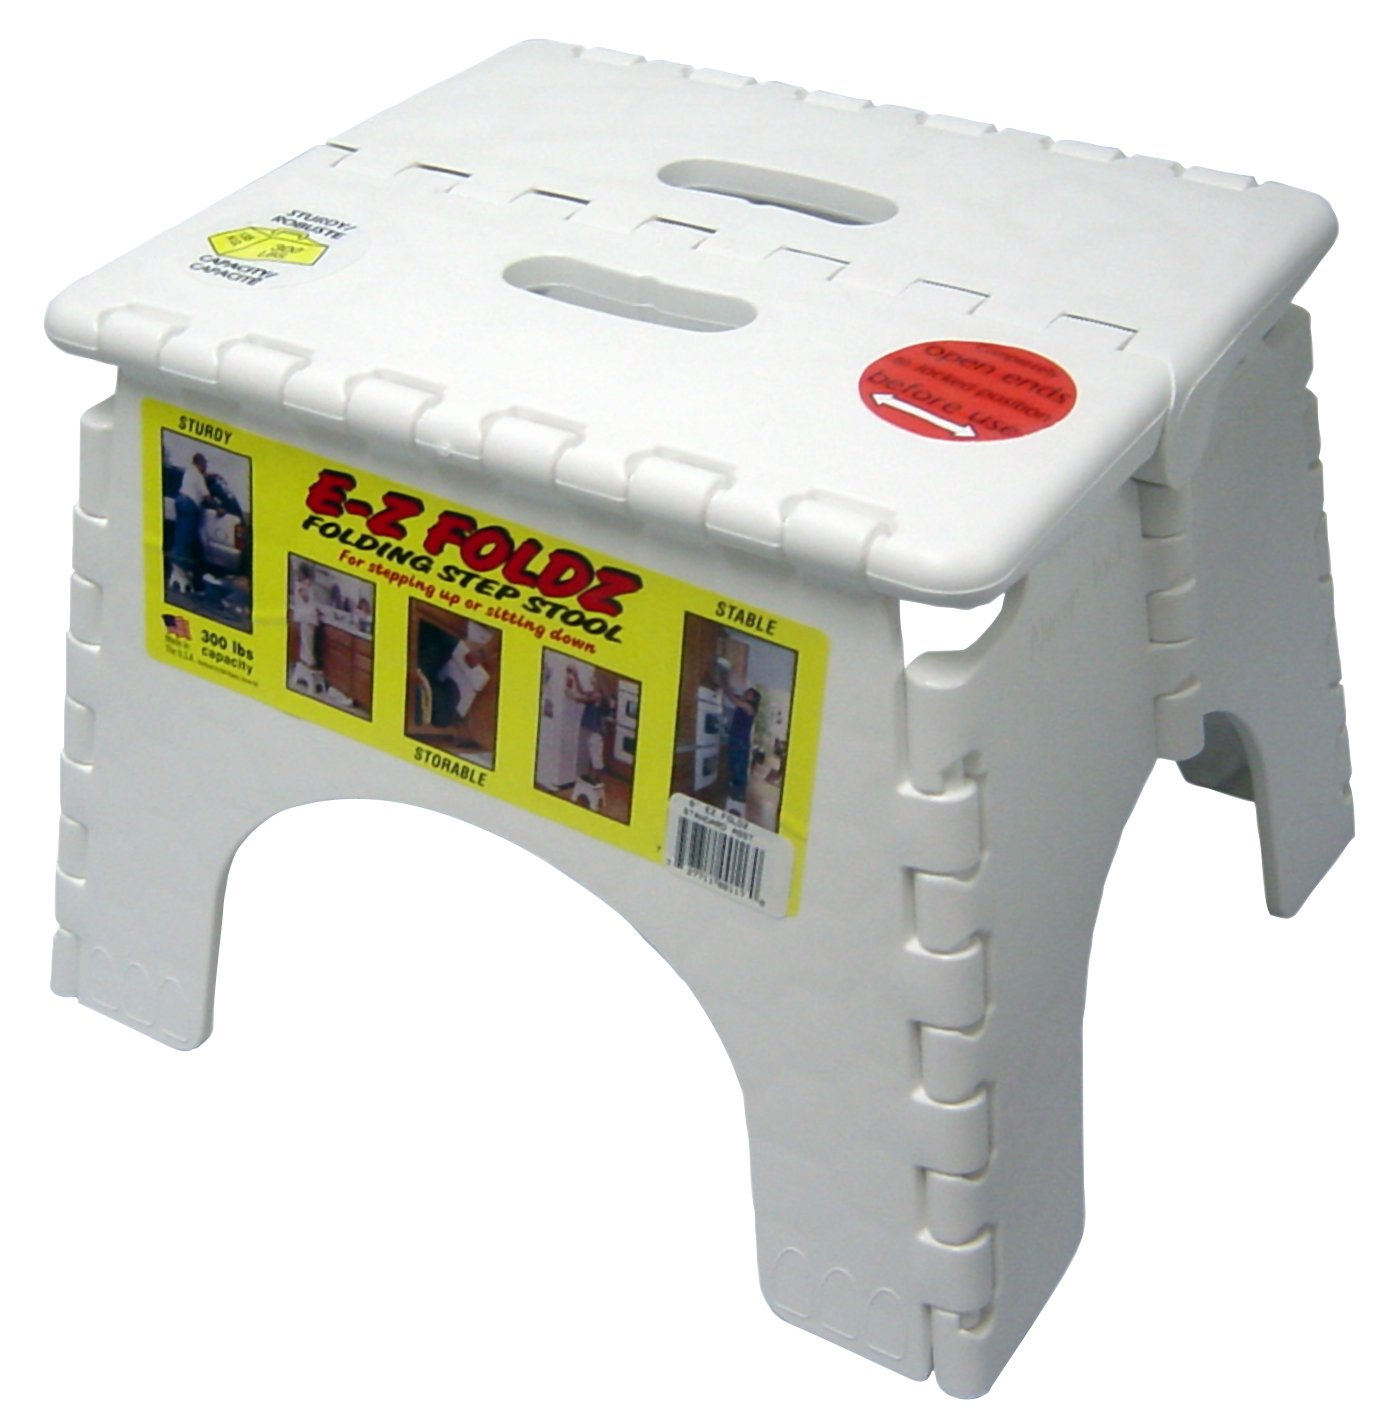 Amazon.com Bu0026R Plastics 101-6 EZ 9-Inch Foldz Step Stool White Automotive  sc 1 st  Amazon.com : plastic stool - islam-shia.org